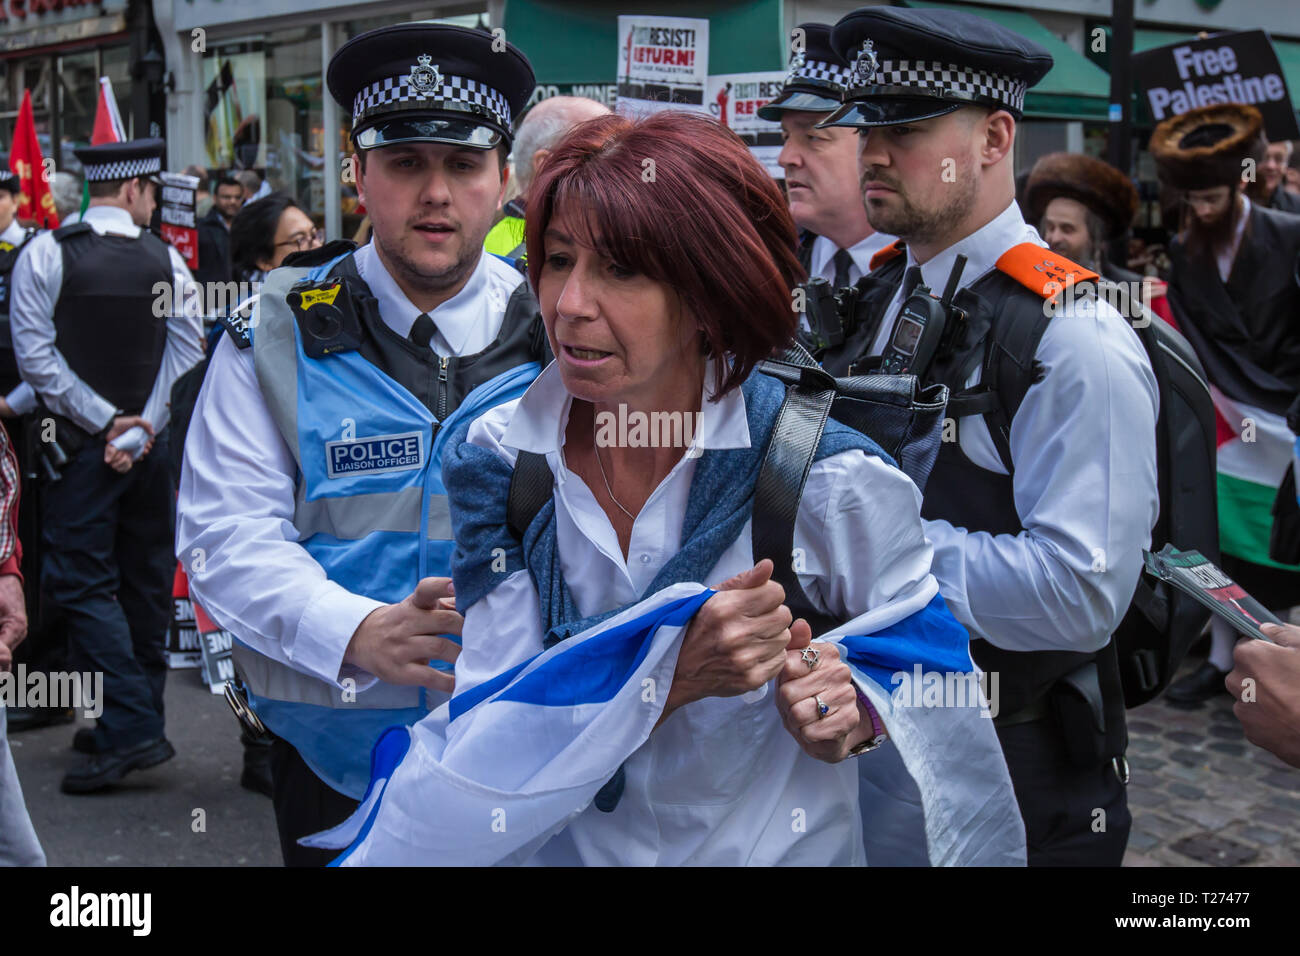 London, UK. 30 March, 2019. A woman with an Israeli flag is removed by the police. Palestinians and supporters gathered outside of the Israeli Embassy in London to mark the beginning of Nakba and to call on the global community to hold Israel to account for their violation of human rights and International law. David Rowe/ Alamy Live News. - Stock Image